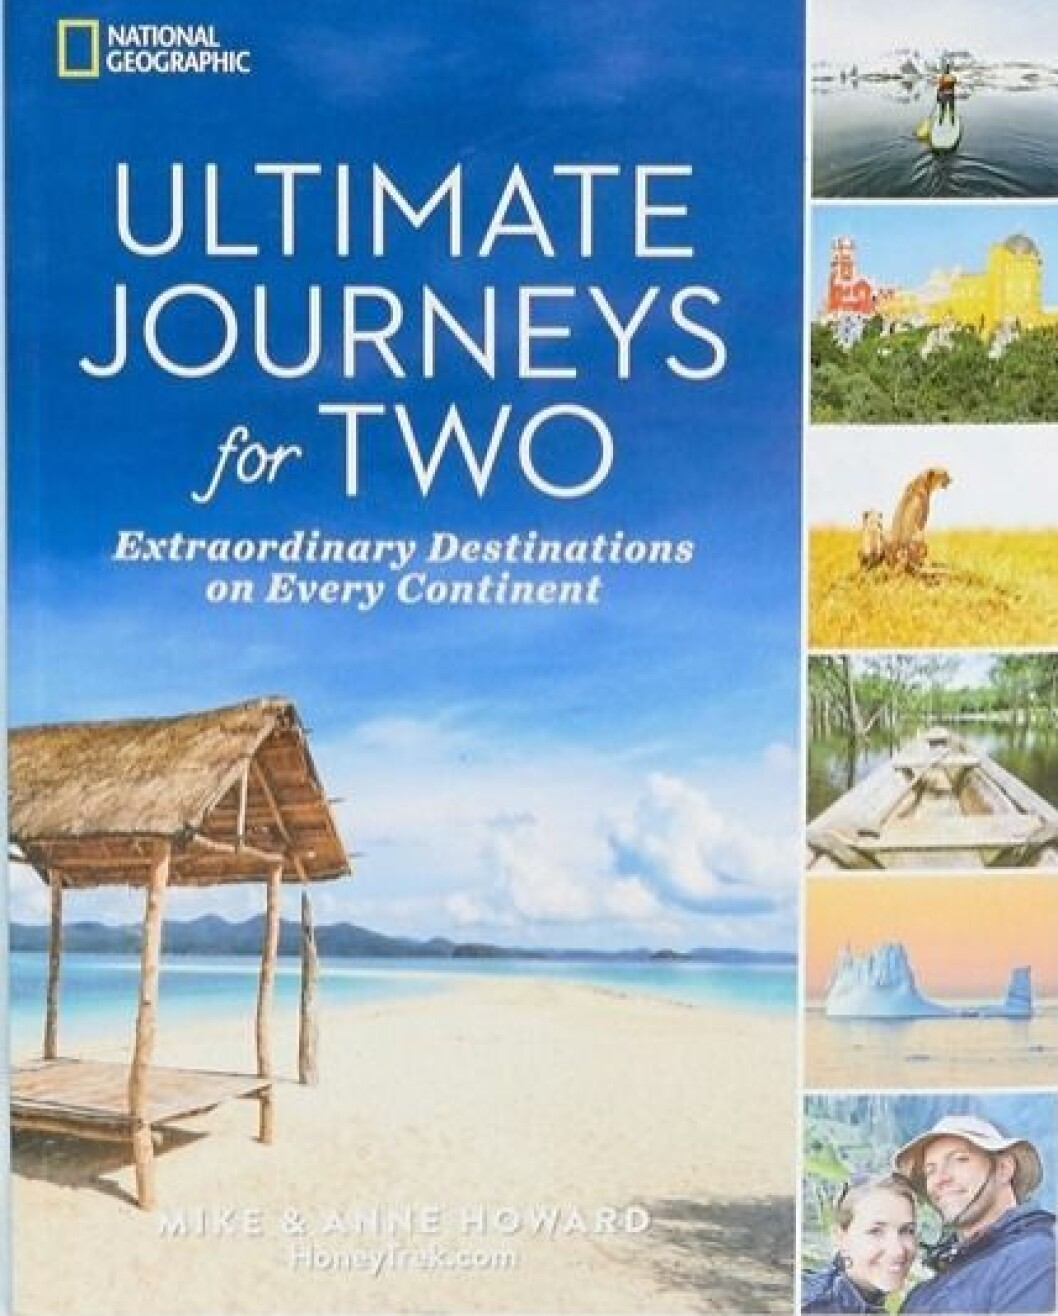 Bok |250,-| https://www.asos.com/books/ultimate-journeys-for-two-travel-book/prd/10768628?clr=multi&SearchQuery=&cid=28354&gridcolumn=1&gridrow=5&gridsize=4&pge=7&pgesize=72&totalstyles=560